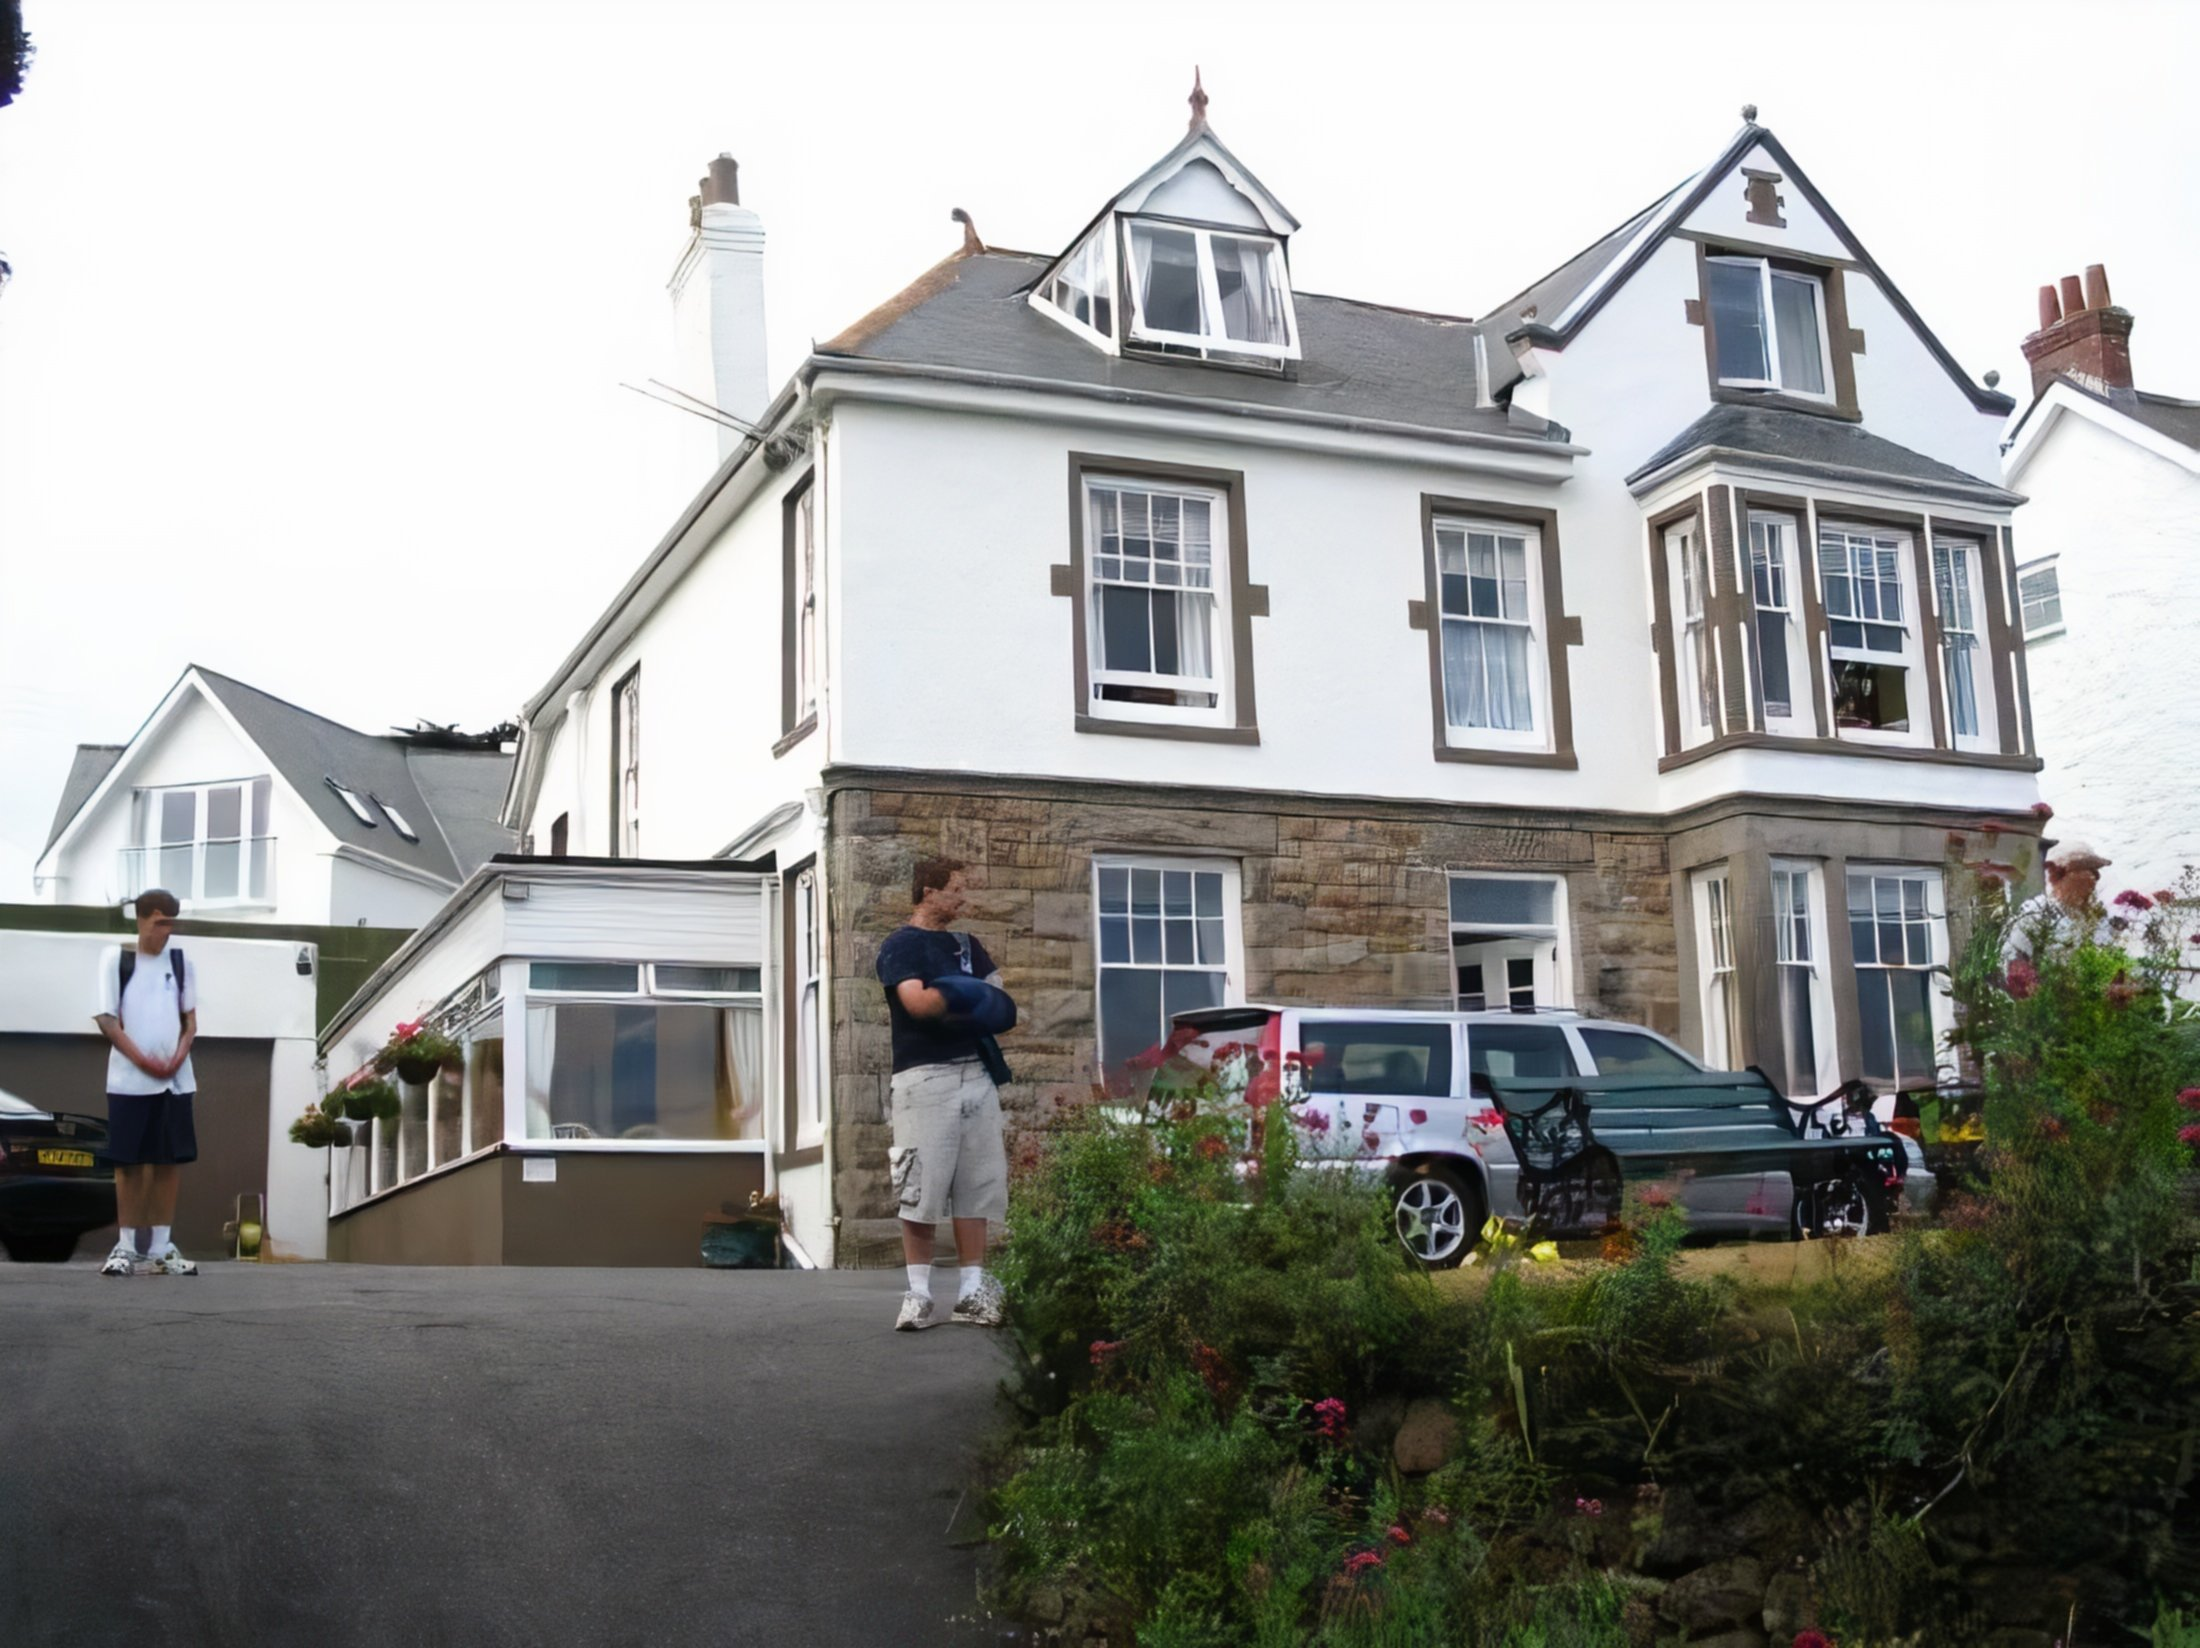 A person standing in front of a house at Borthalan Hotel.